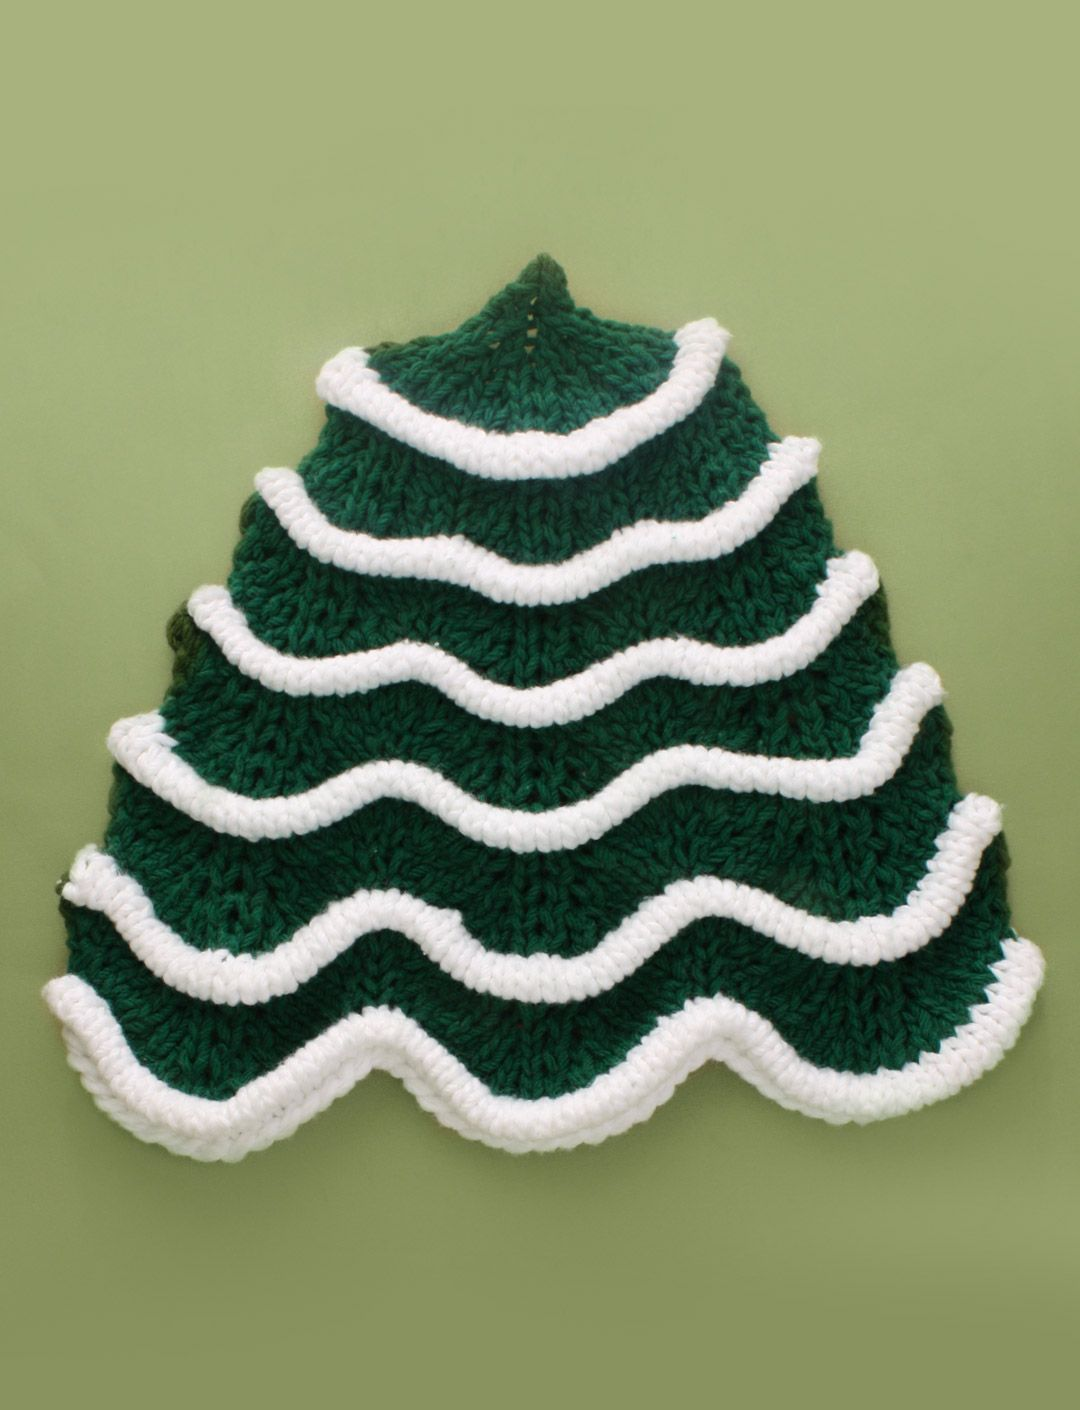 Christmas Tree Dishcloth Christmas Knitting Patterns Christmas Knitting Patterns Free Christmas Knitting